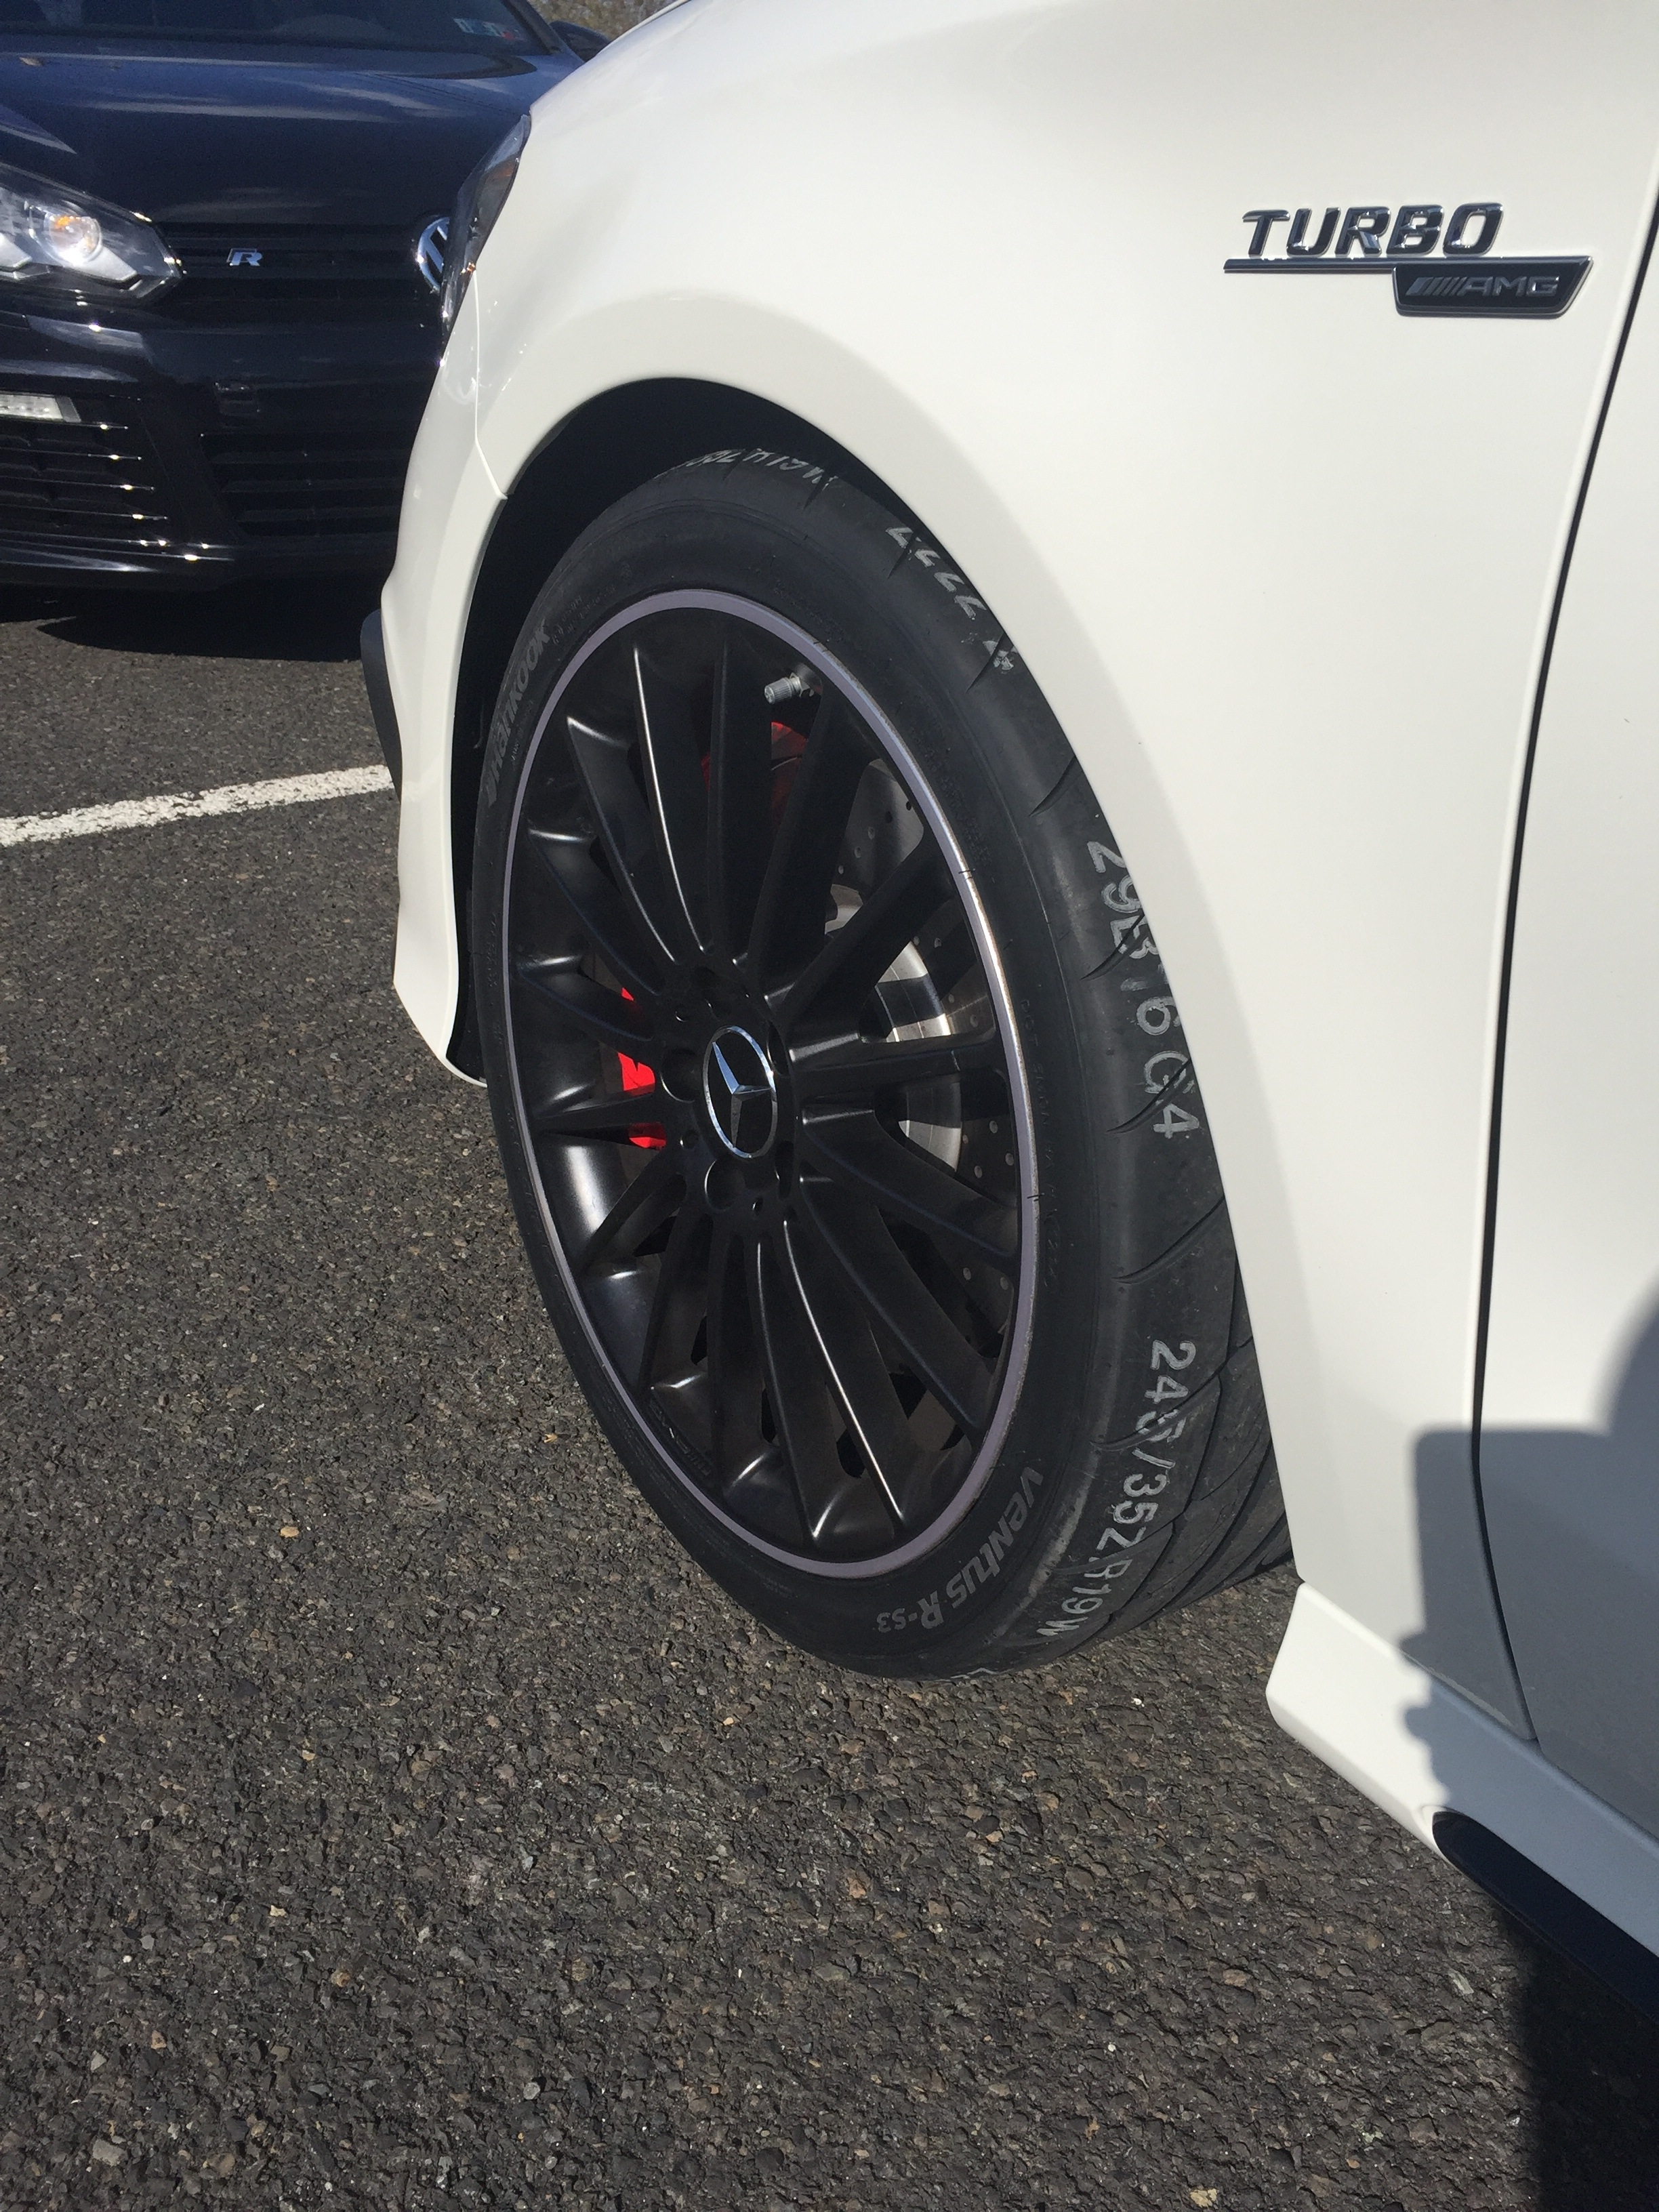 New autocross tires - 245/35-19 Hankook R-S3 - Page 2